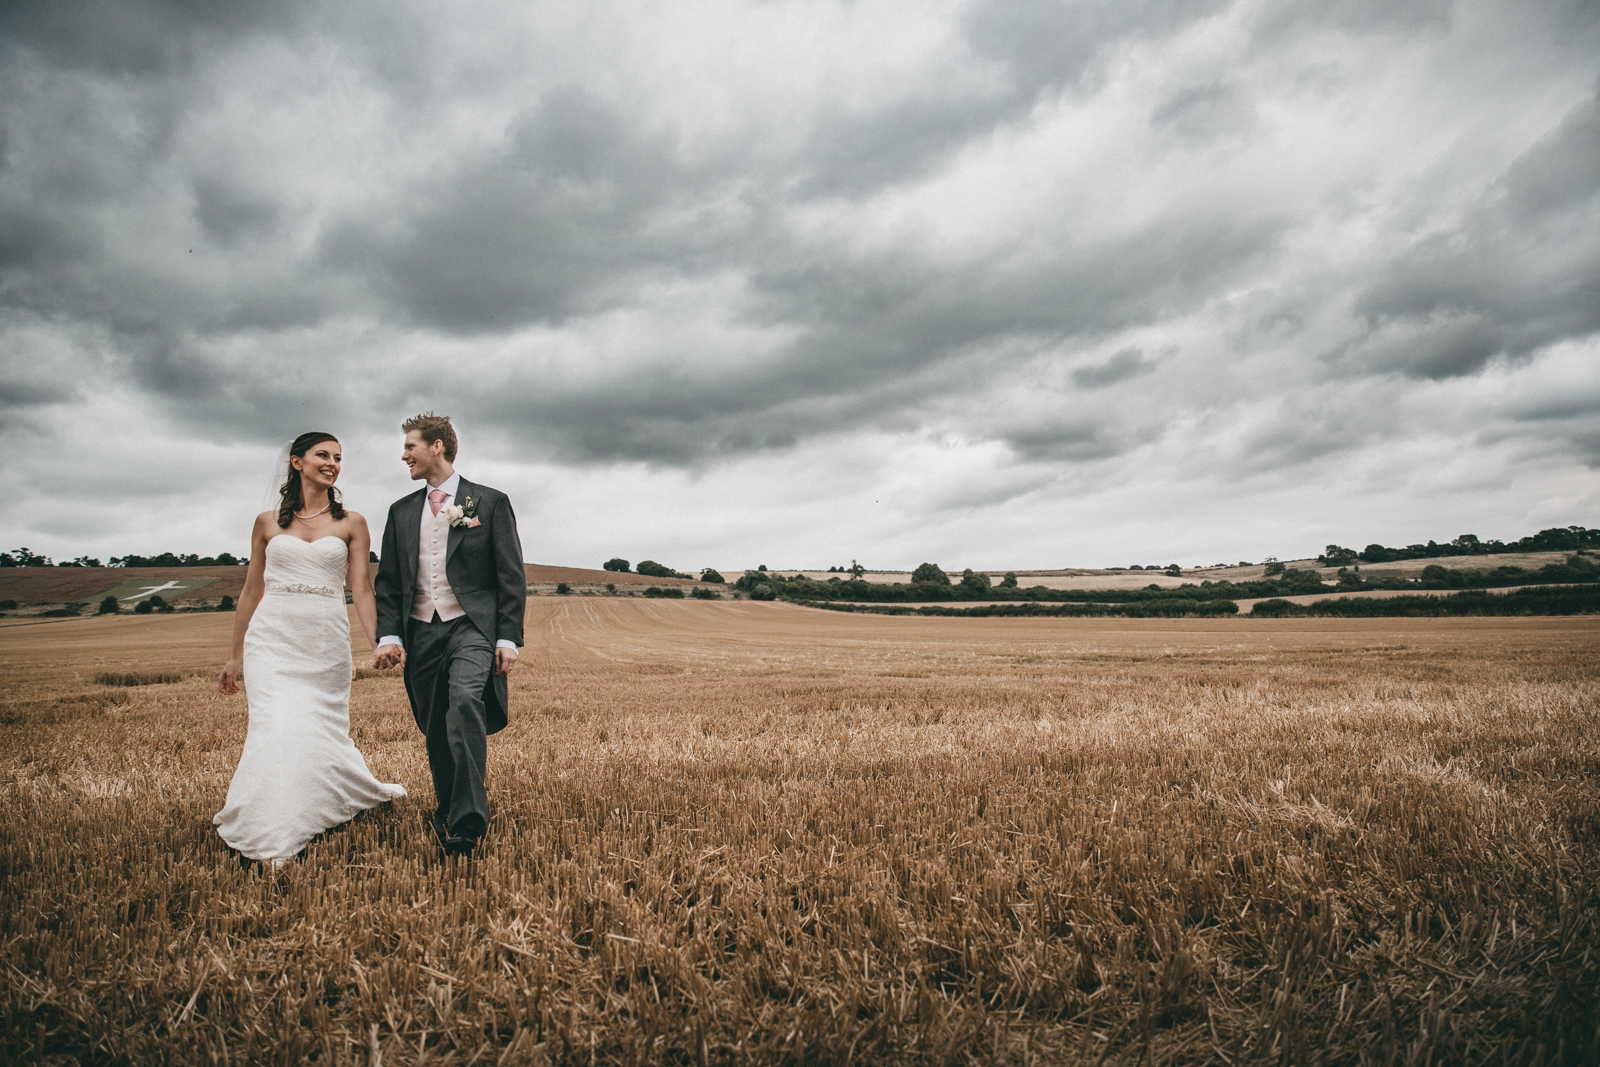 Chris Bradshaw Wedding Photography - Simon & Amanda Wedding Photos-72